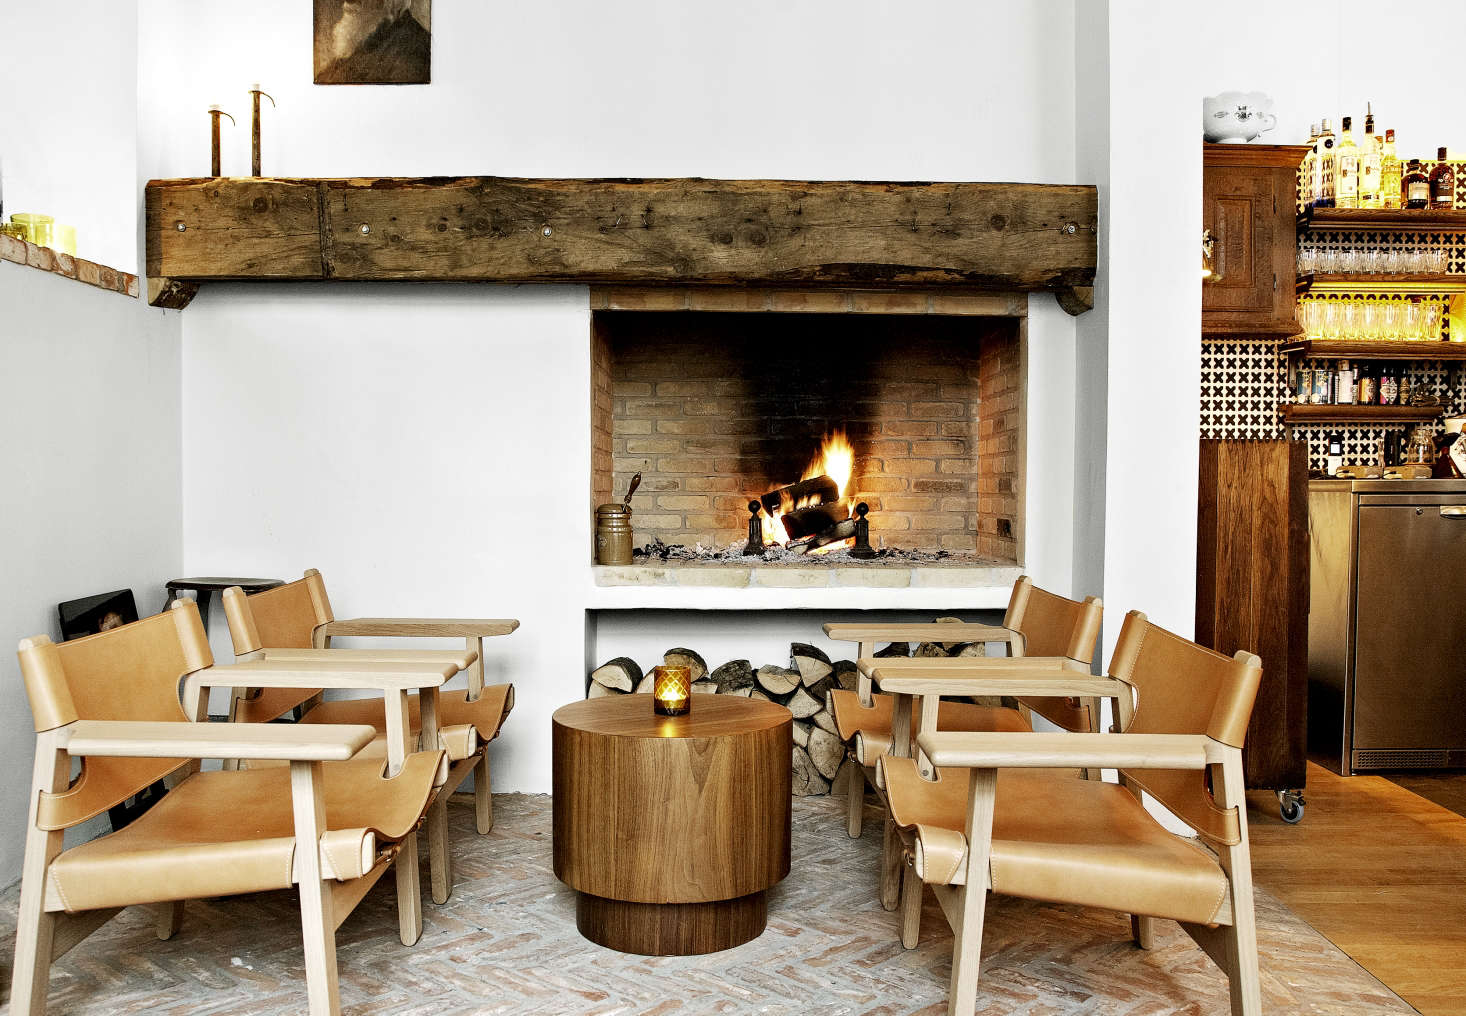 The bar opens to blazing fire in a beamed hearth. (Note the inset stacked firewood.) Danish designerBørge Mogensen&#8